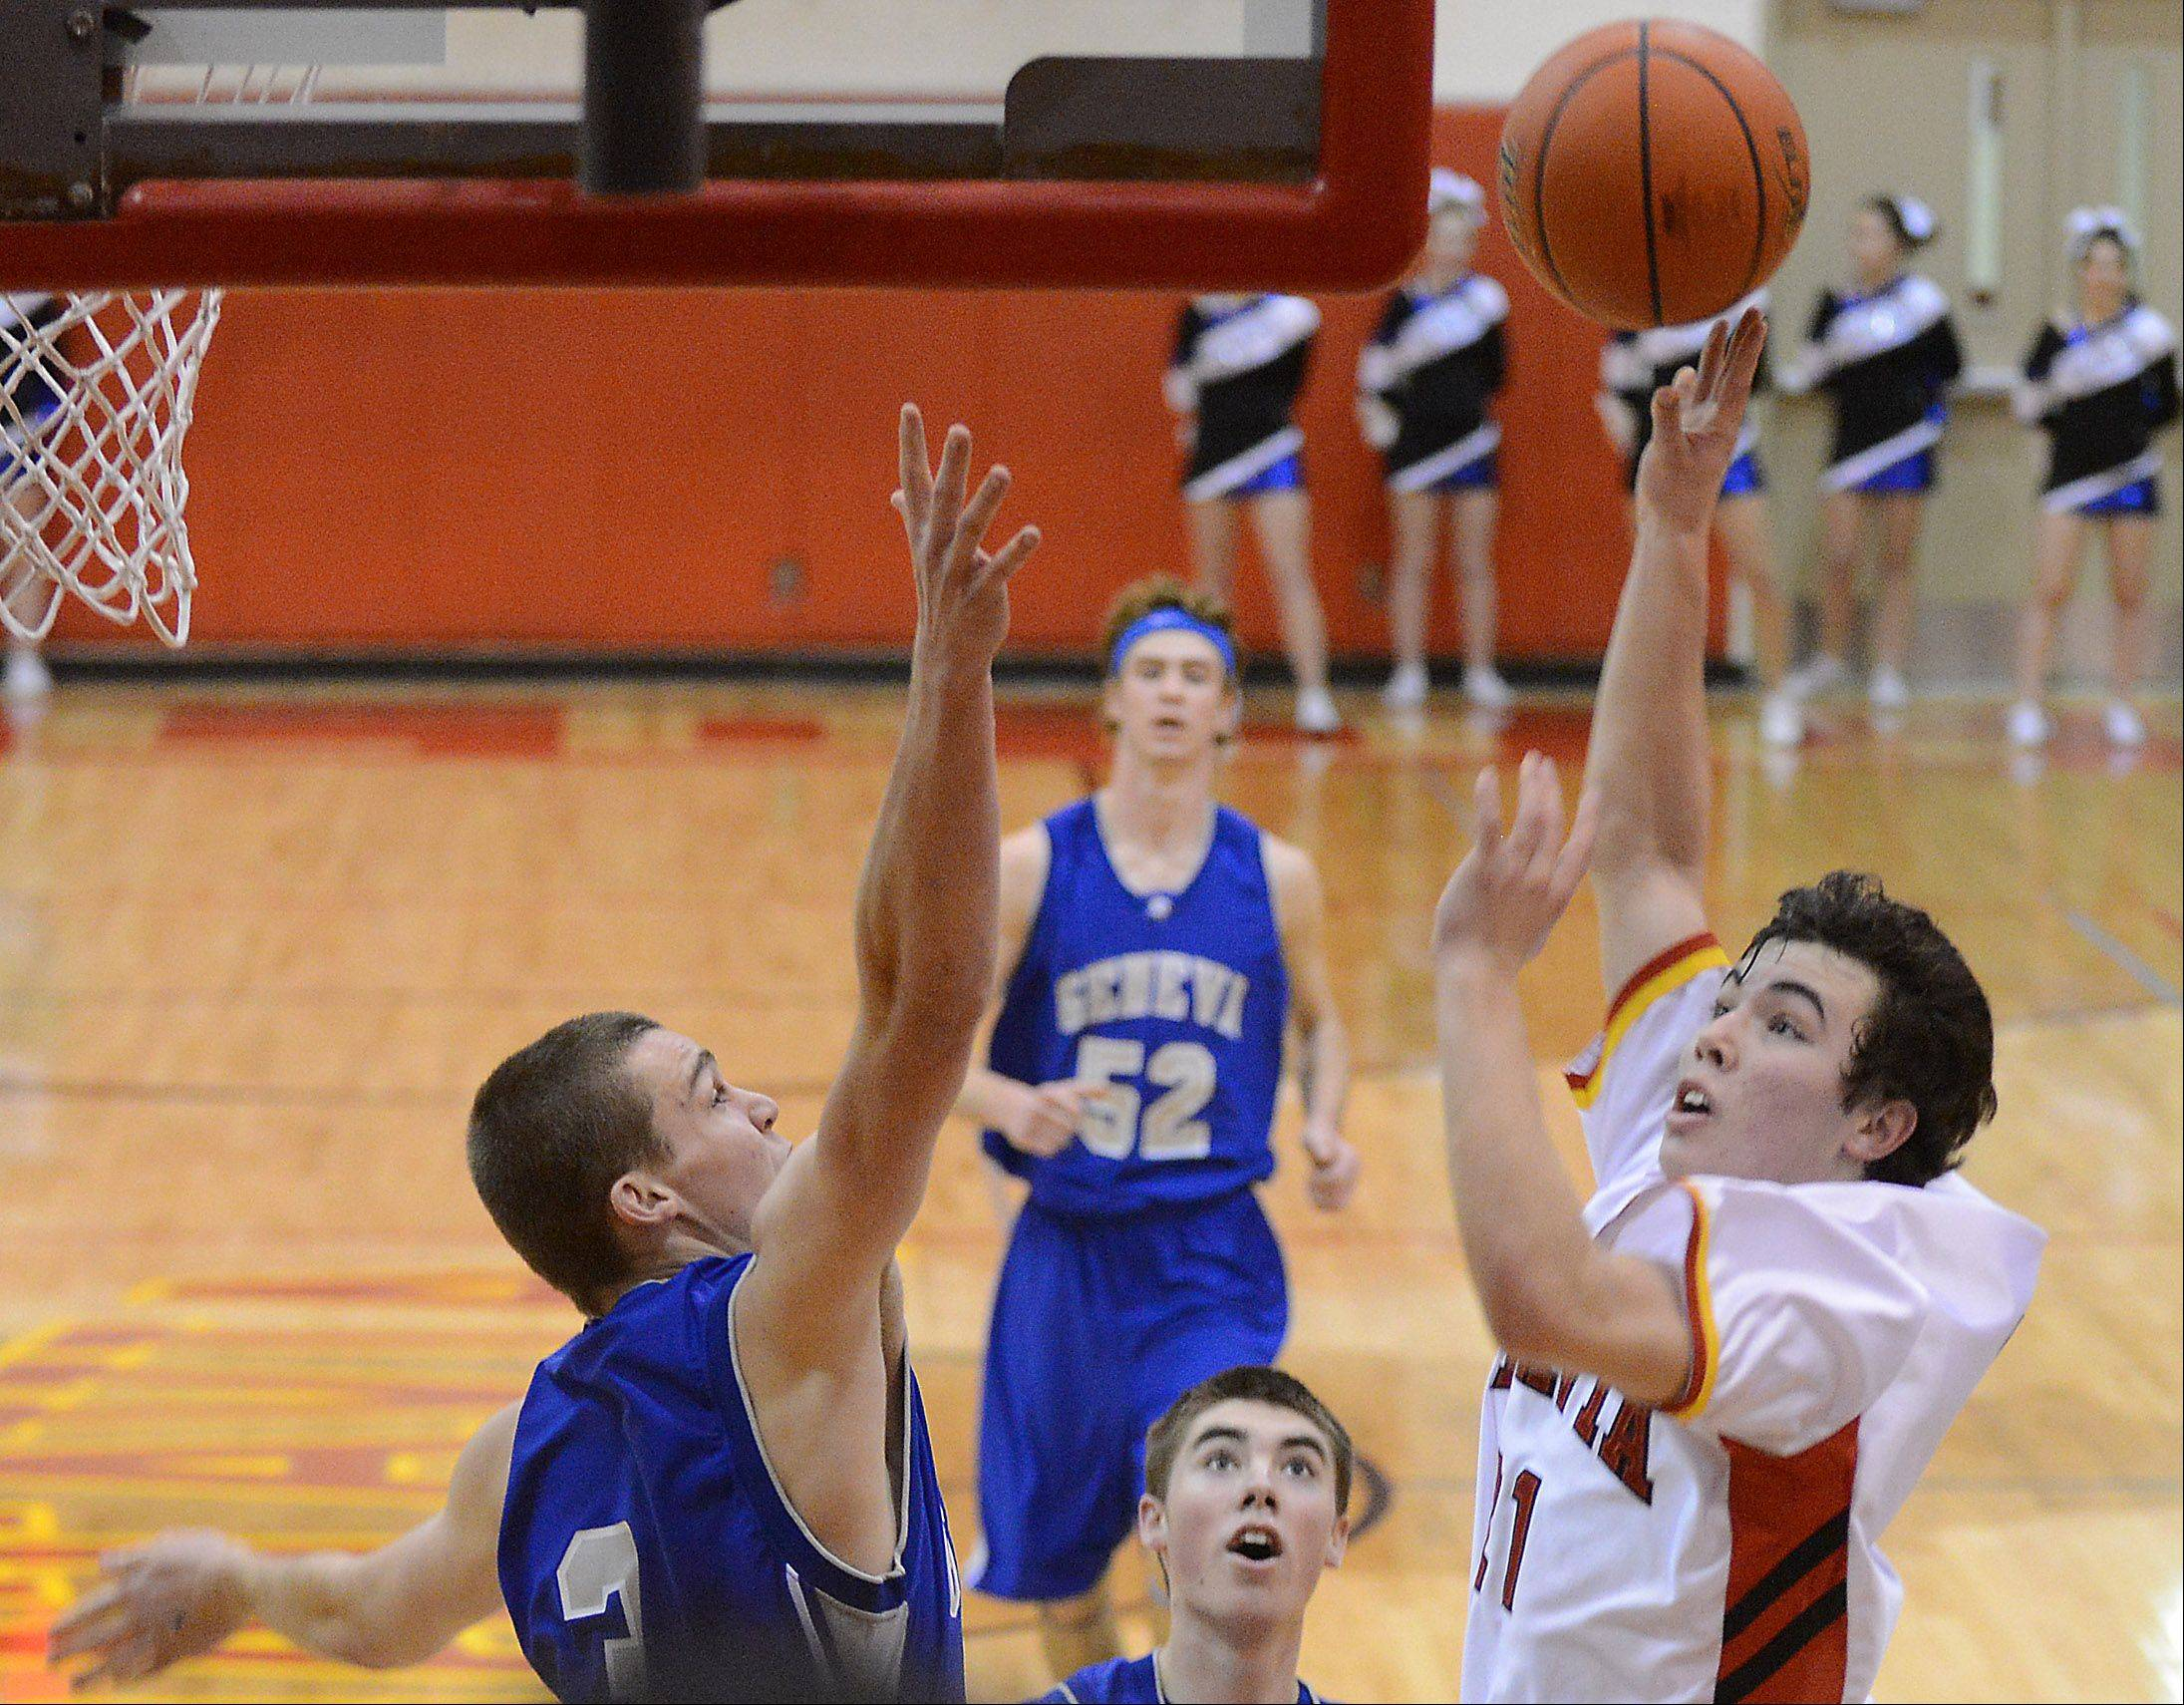 Batavia's Jeremy Schoessling puts up a shot over Geneva's Pace Temple.